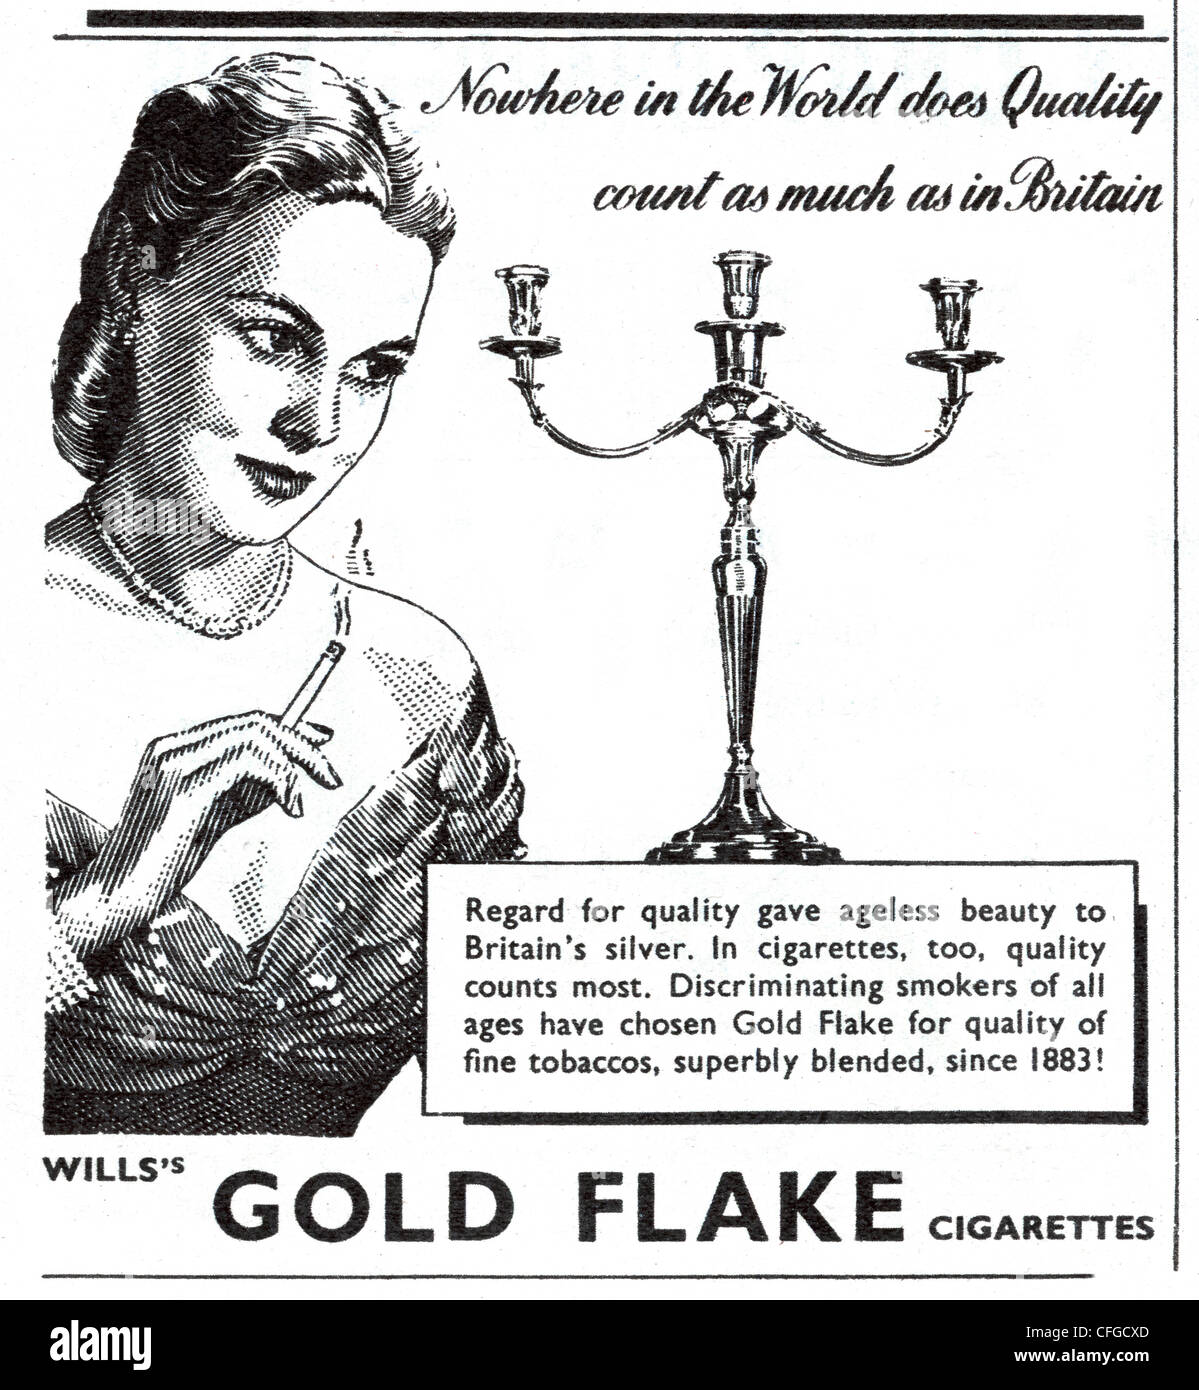 Gold Flake cigarettes advert from 1947 - Stock Image